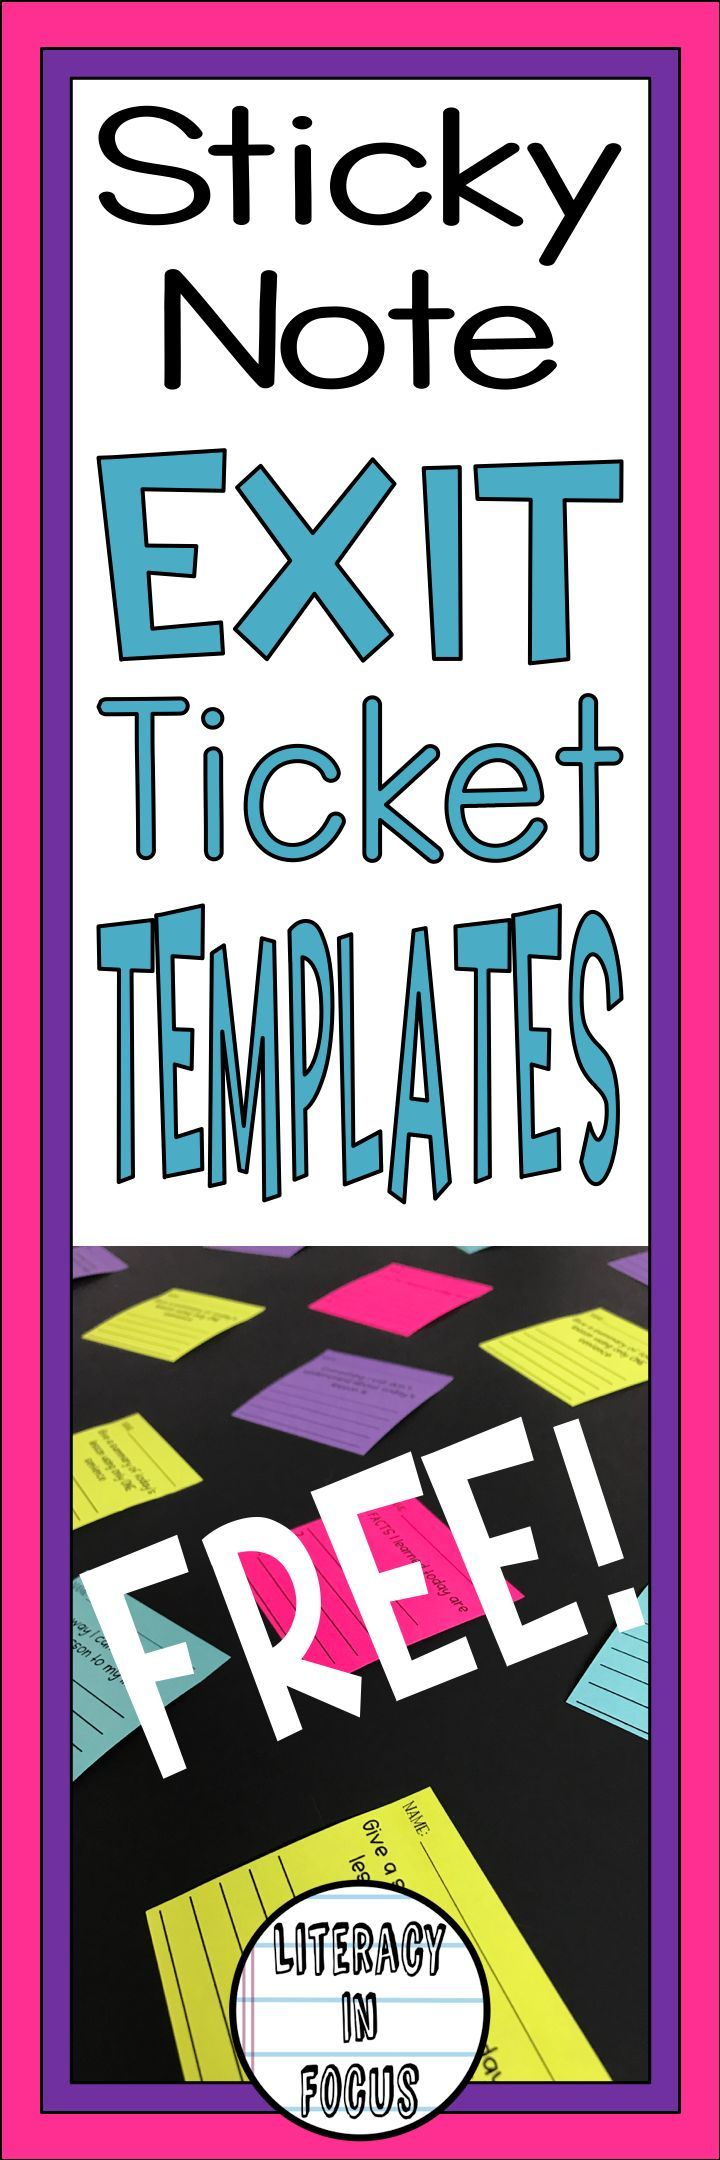 Assess student understanding and get valuable feedback with exit tickets! This product contains 15 different sticky note exit ticket templates for use with any subject. If you are looking for a quick and easy formative assessment tool, look no further! Assess reteaching needs in minutes using these sticky note exit tickets! #exittickets